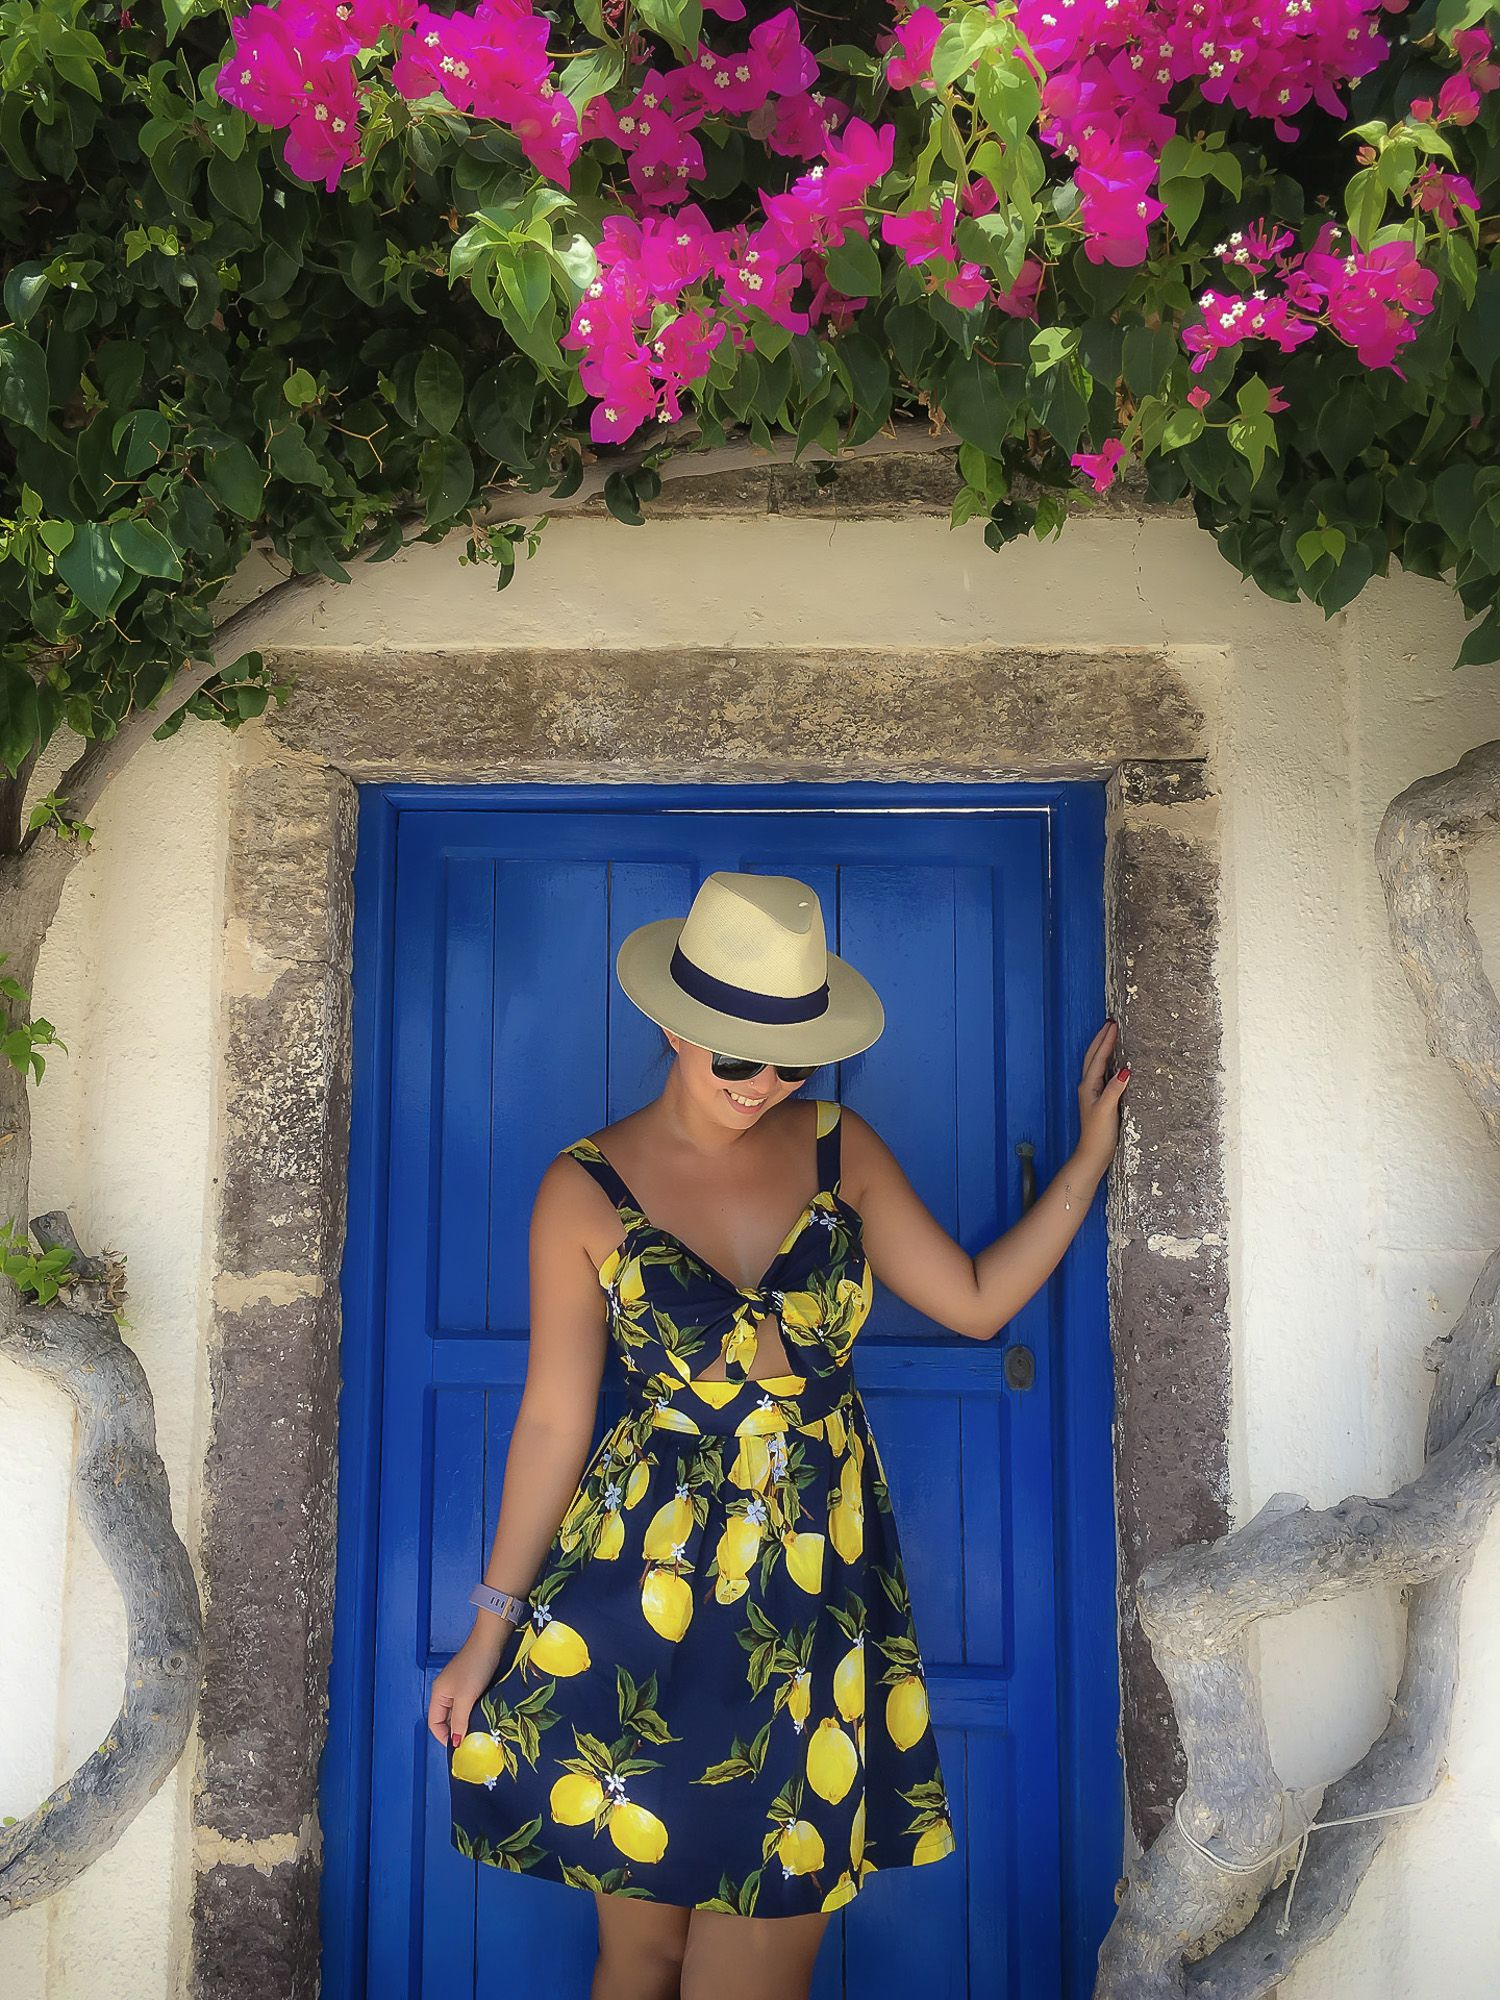 Pink bougainvillea, blue door, lemon-print dress, and a nice hat. Sometimes photos just come together all by themselves ;-)